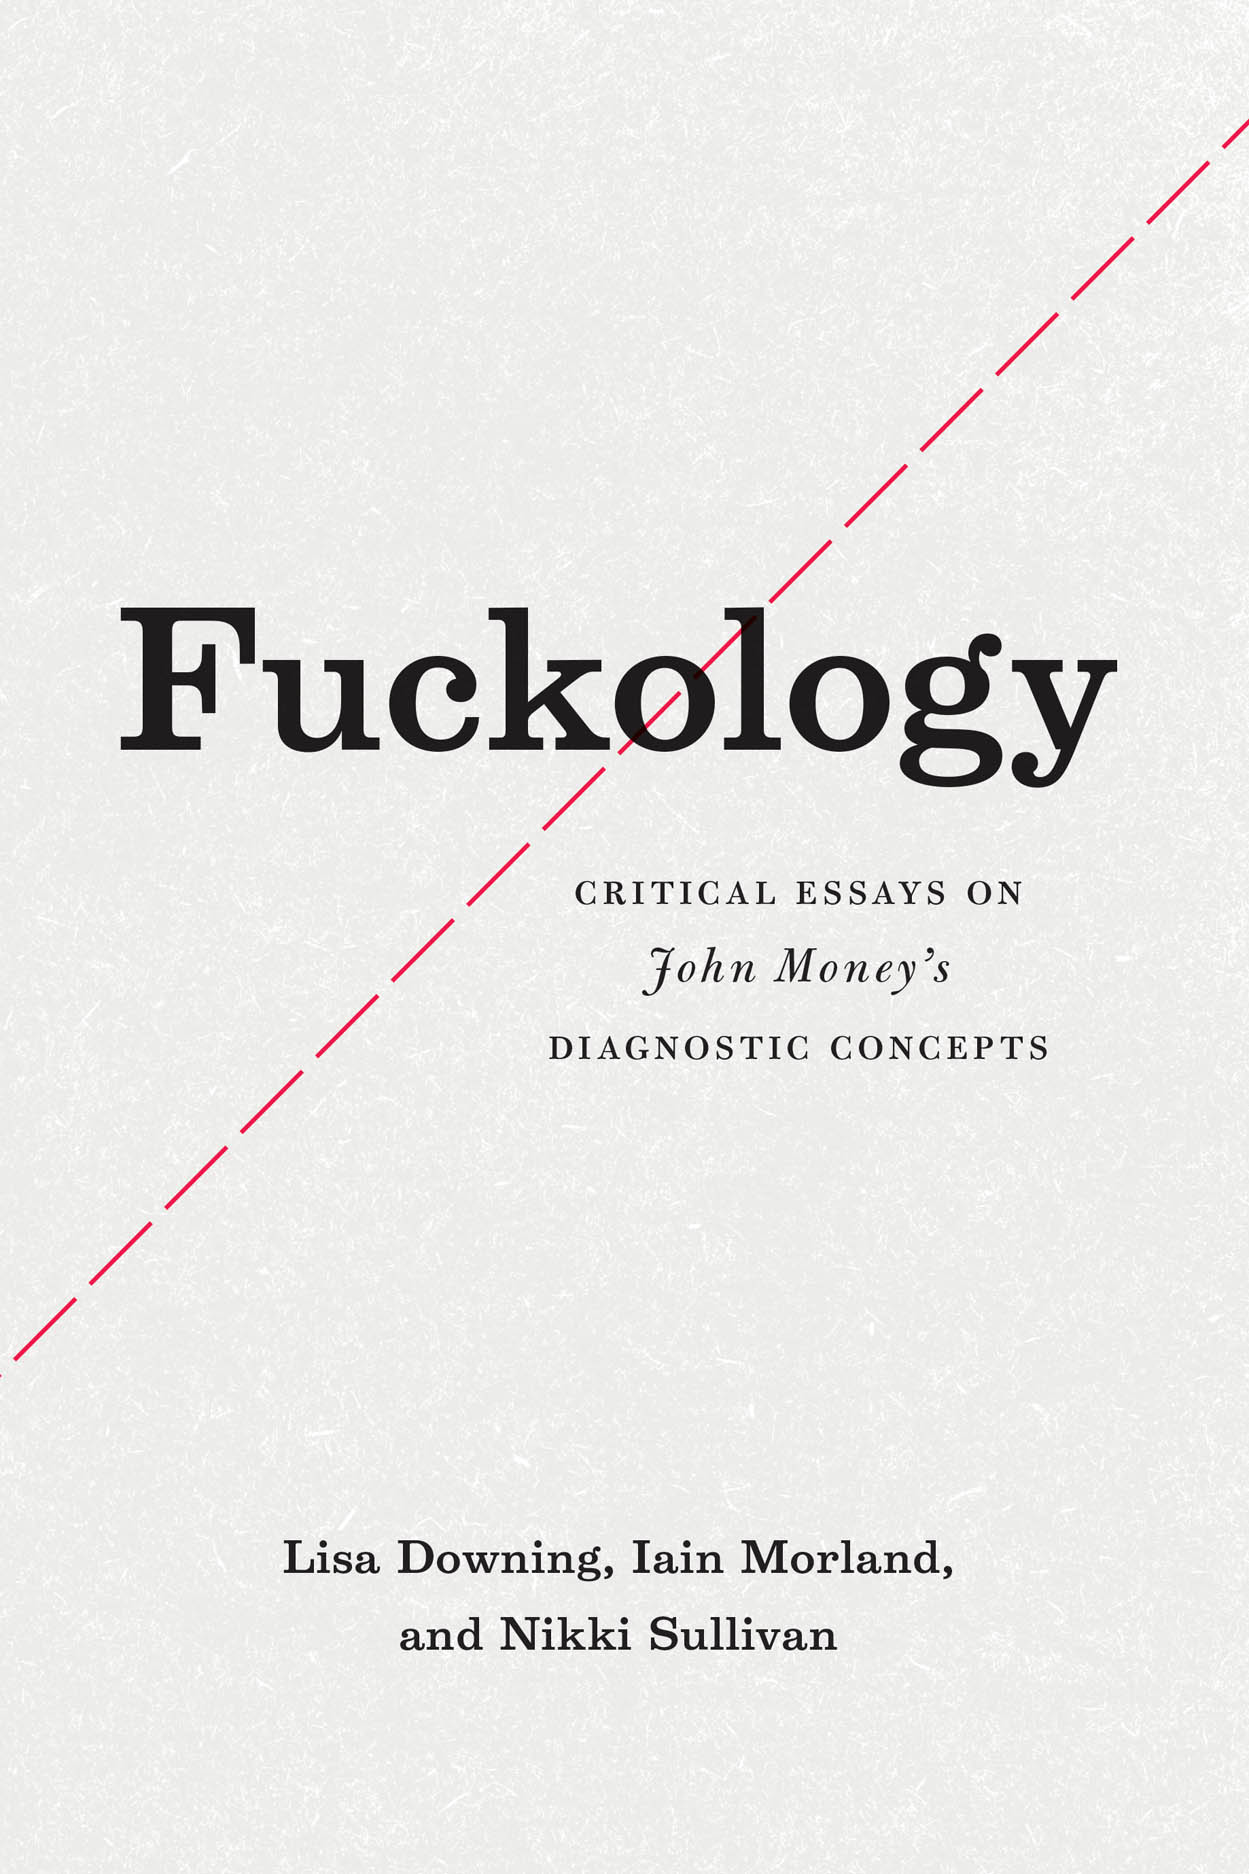 Fuckology: Critical Essays on John Money's Diagnostic Concepts